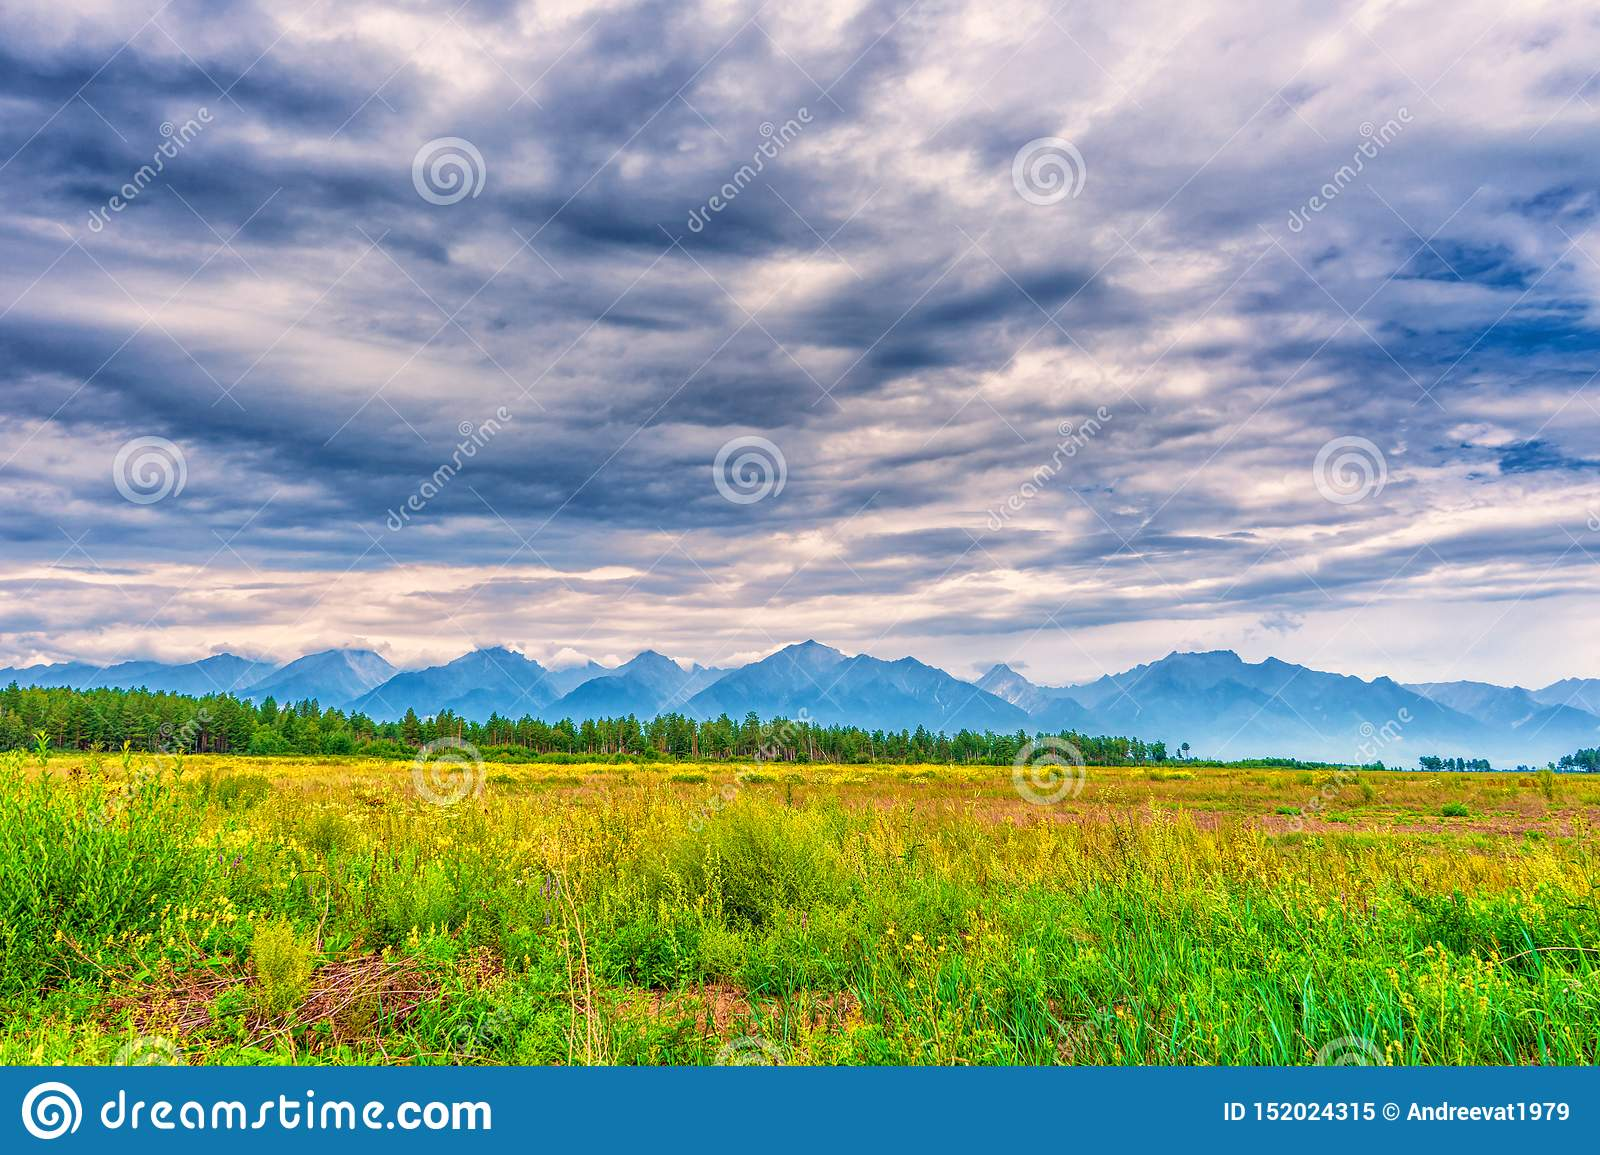 Picturesque summer landscape of mountain range with peaks, valley with green grass, grove and cloudy sky. Natural background with